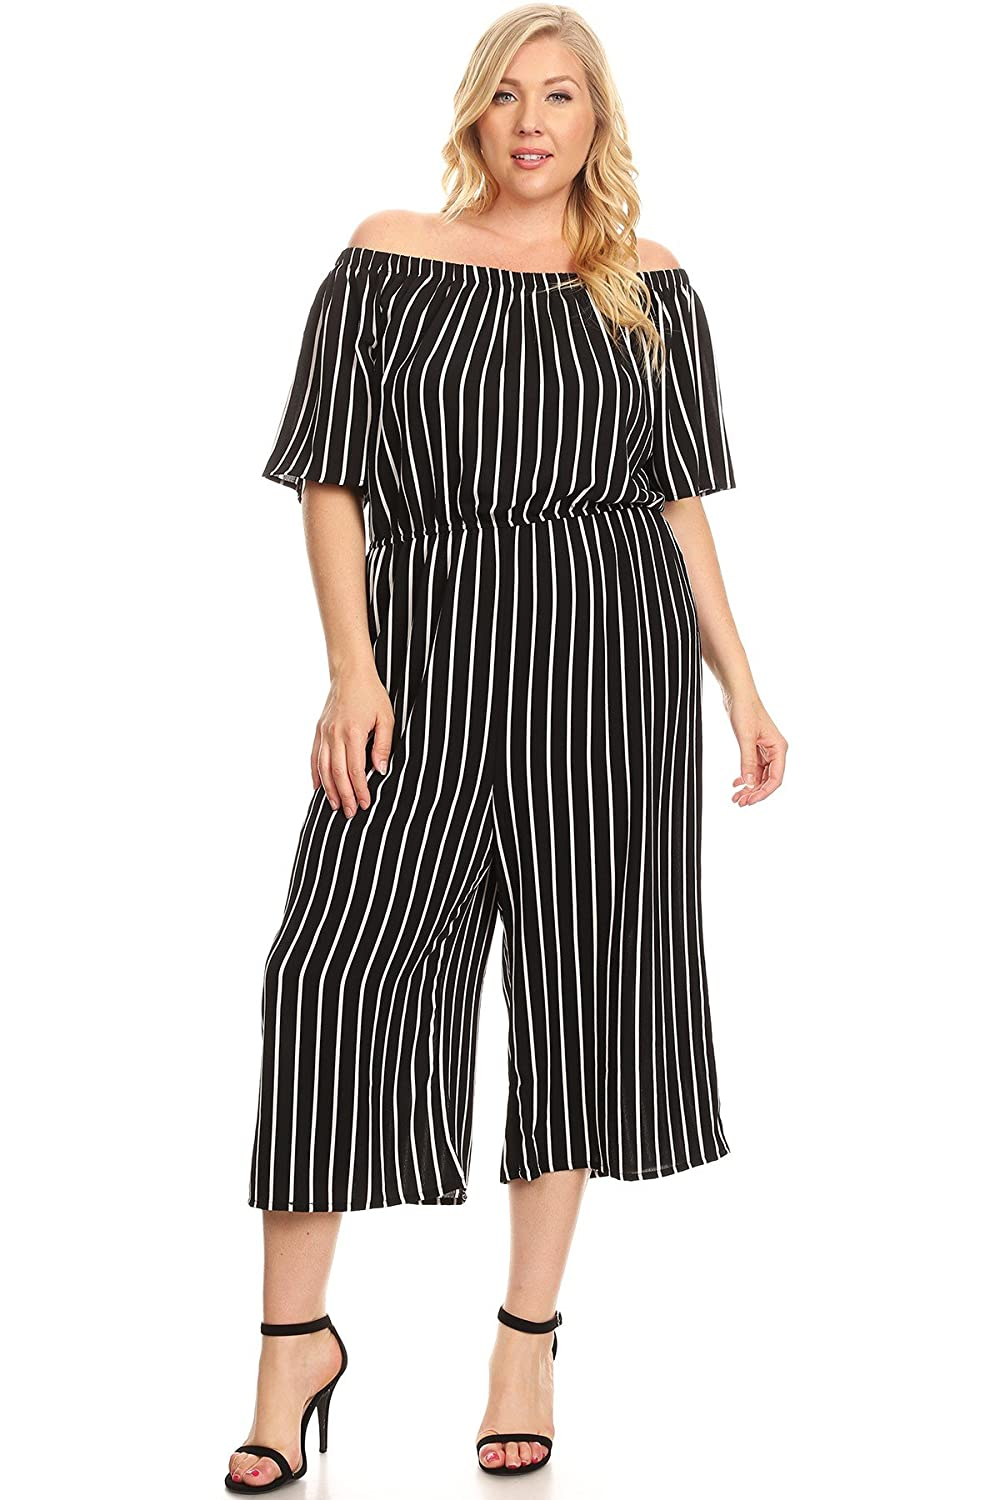 06a39f839900 Striped plus size culotte jumpsuit with an off the shoulder neckline